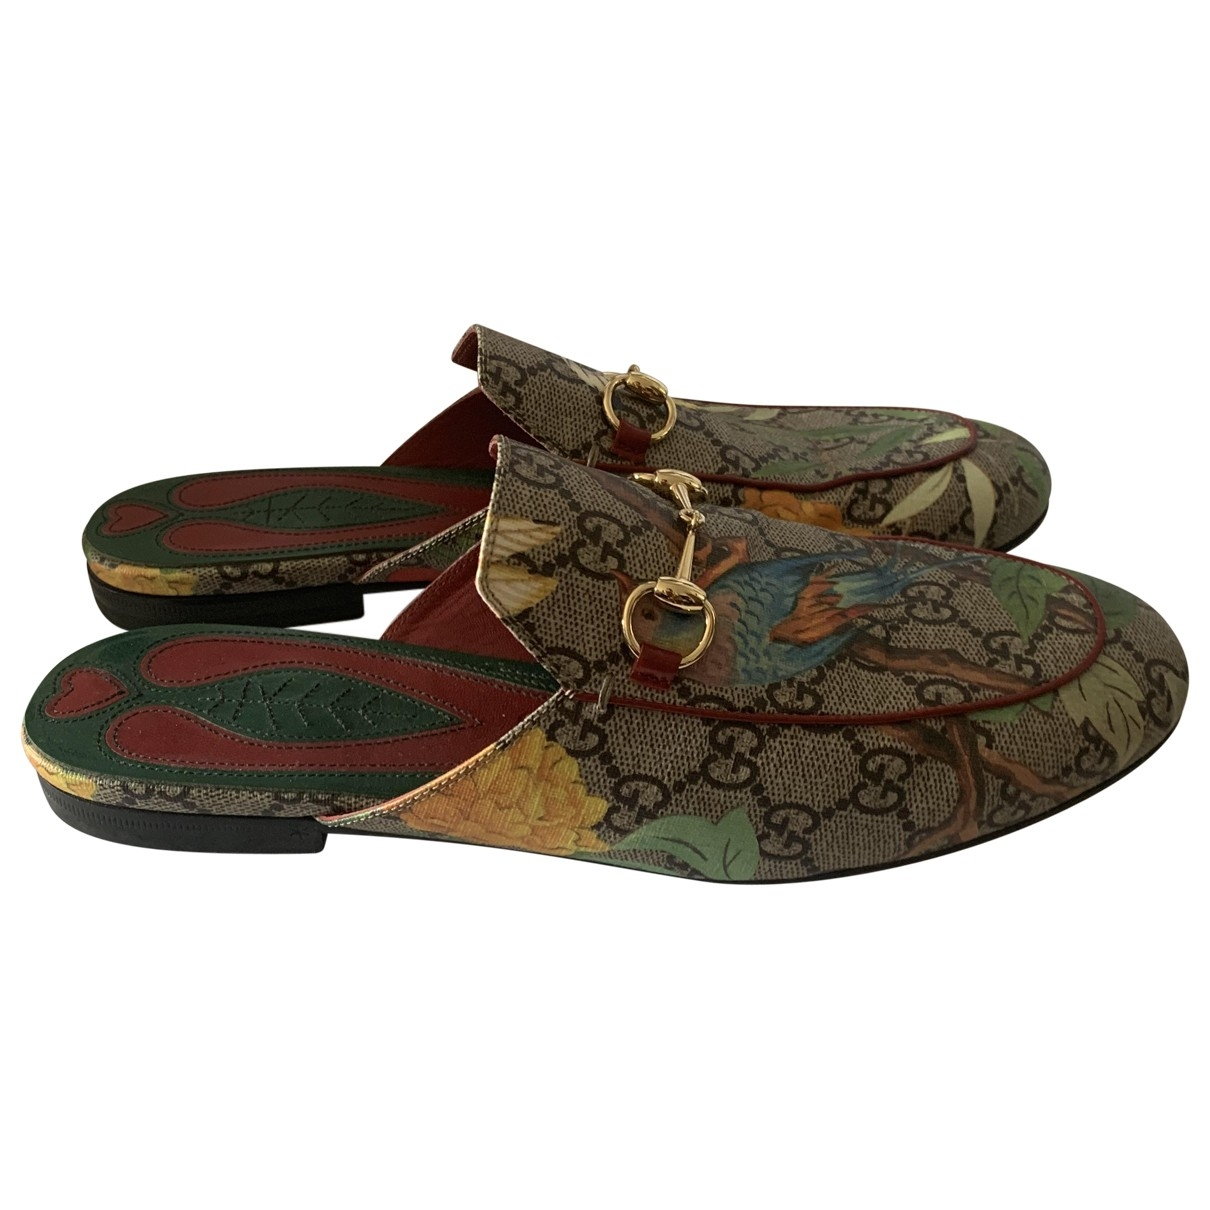 Gucci Princetown Multicolour Cloth Flats for Women 38.5 EU